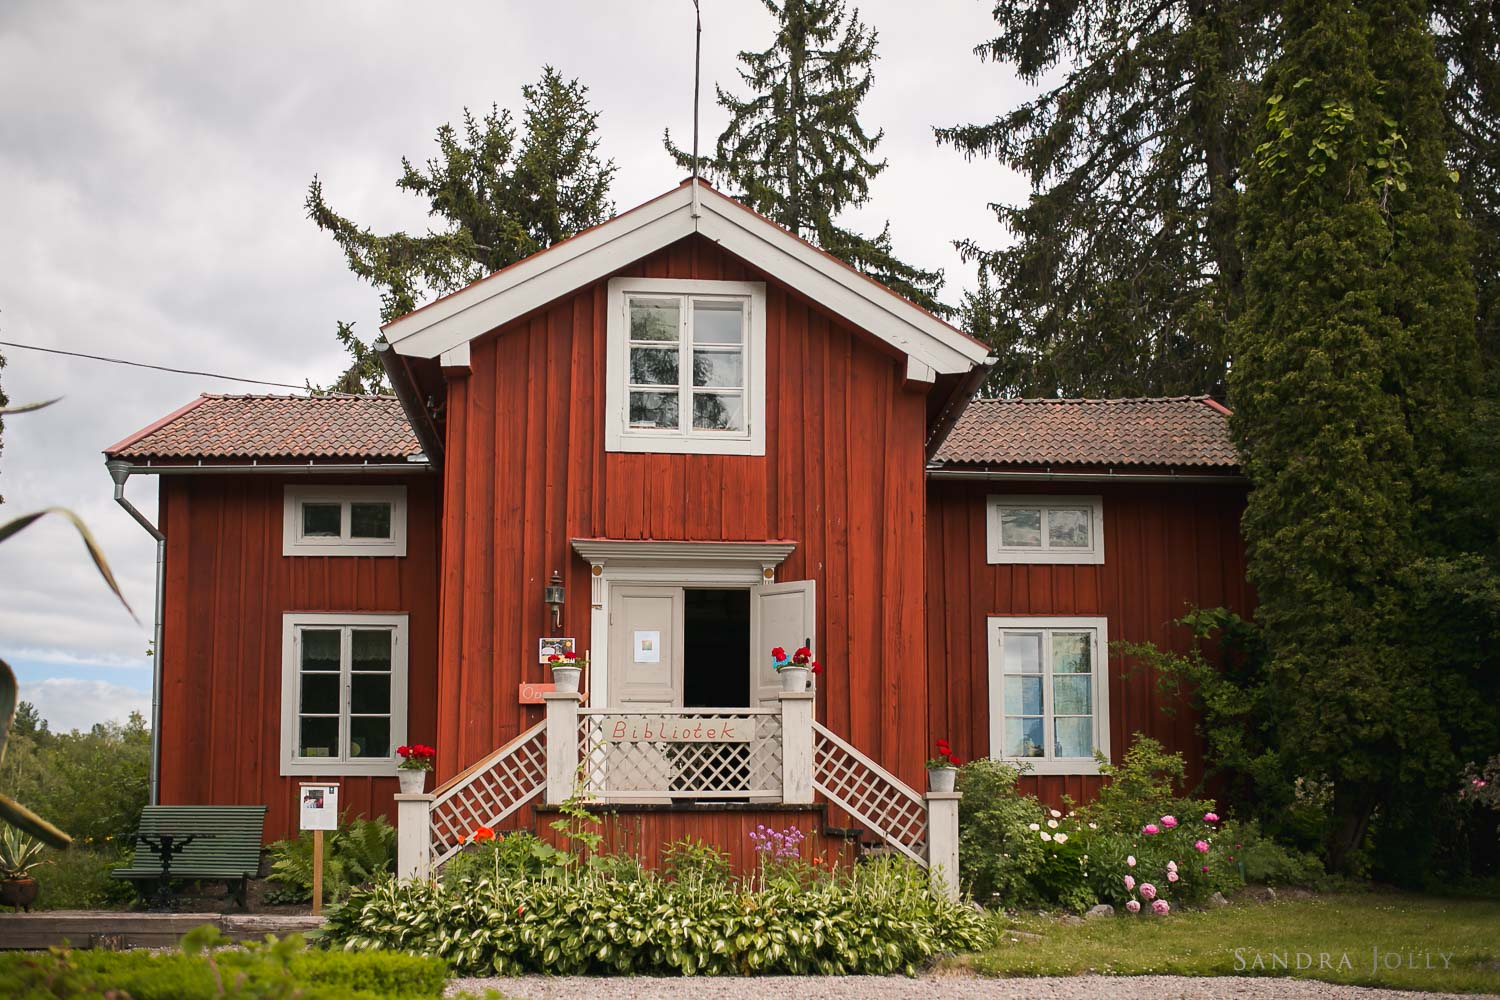 red-house-in-dalarna.jpg